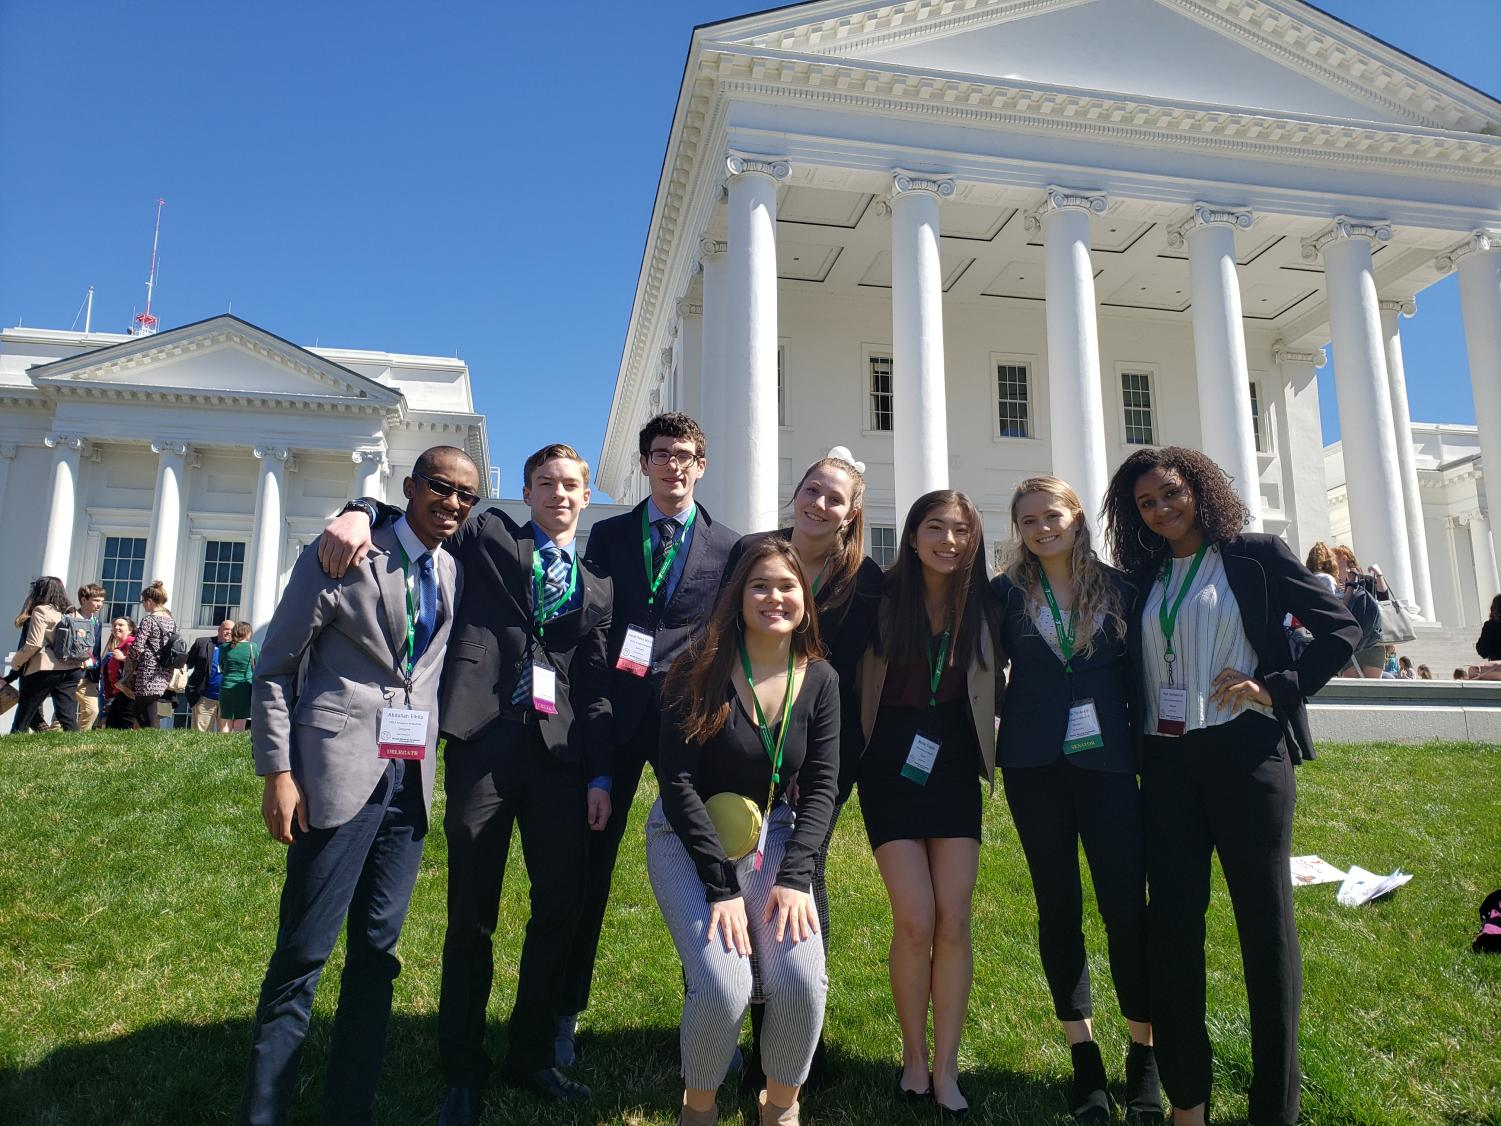 Isaiah (the author) is 3rd from left on a field trip with the Model General Assembly in March. This year's team got Virginia's Youth Governor to sign two bills: restoring voting rights to former felons, and amending the definition of Hate Crimes to include crimes against LGBTQ.